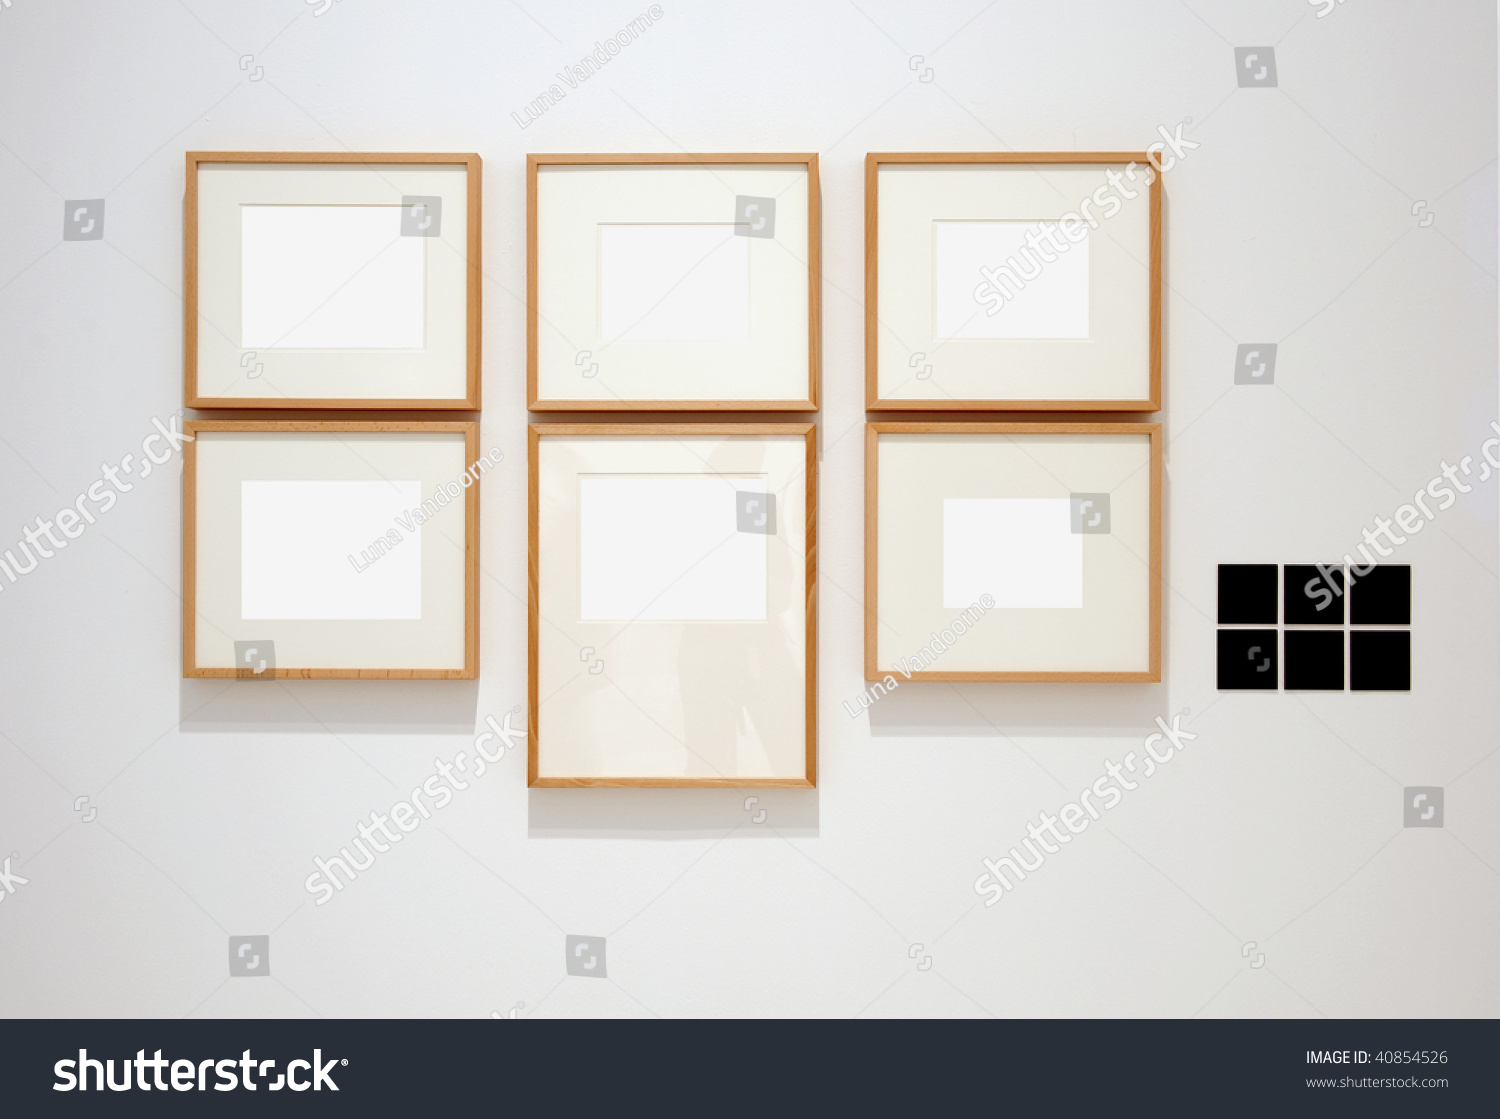 six empty frames on white wall in museum with labels - Empty Frames On Wall